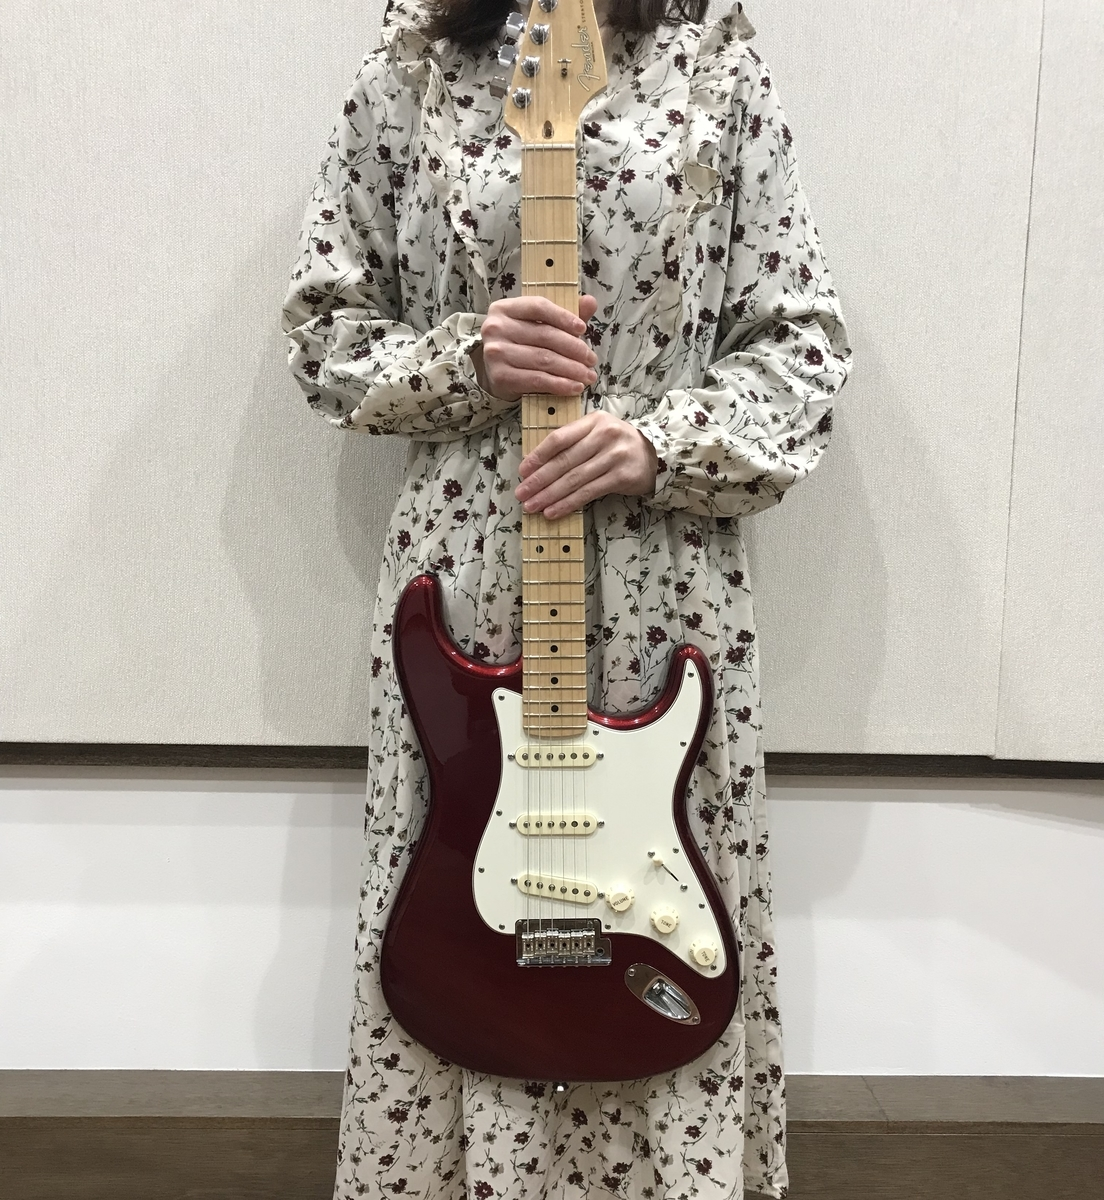 f:id:totalguitarmethod:20190327183944j:plain